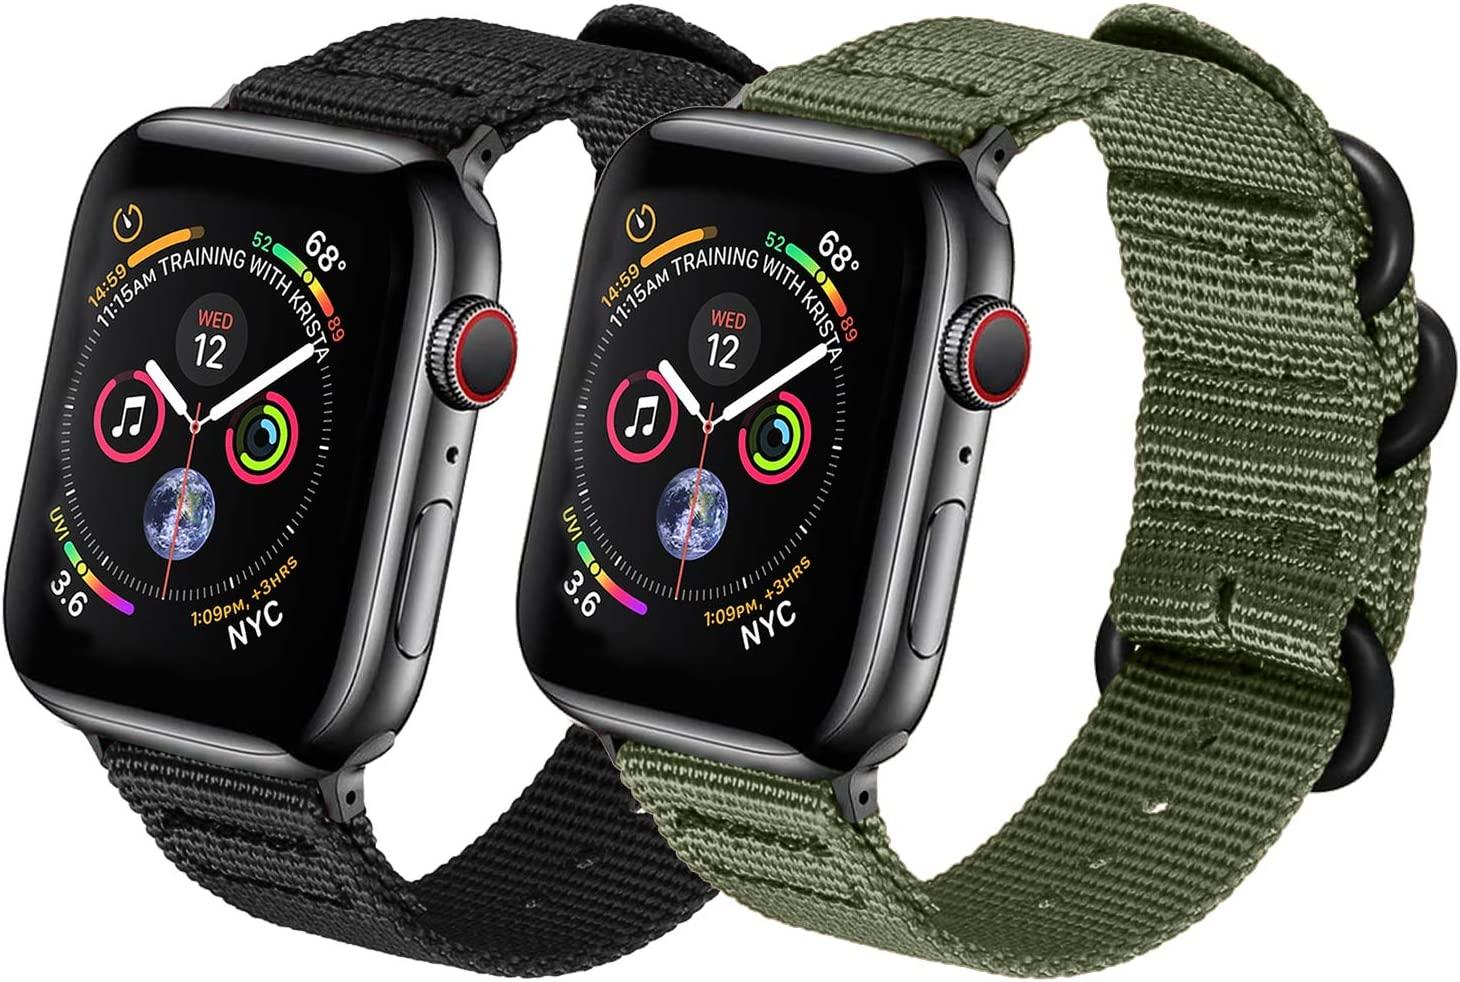 Watpro Compatible with Apple Watch Band 38mm 40mm 42mm 44mm Women Men Nylon Rugged Replacement iWatch Band Military-Style Buckle Grey Adapters for Sport Series 5 4 3 2 1 (2-Black+Army Green,)